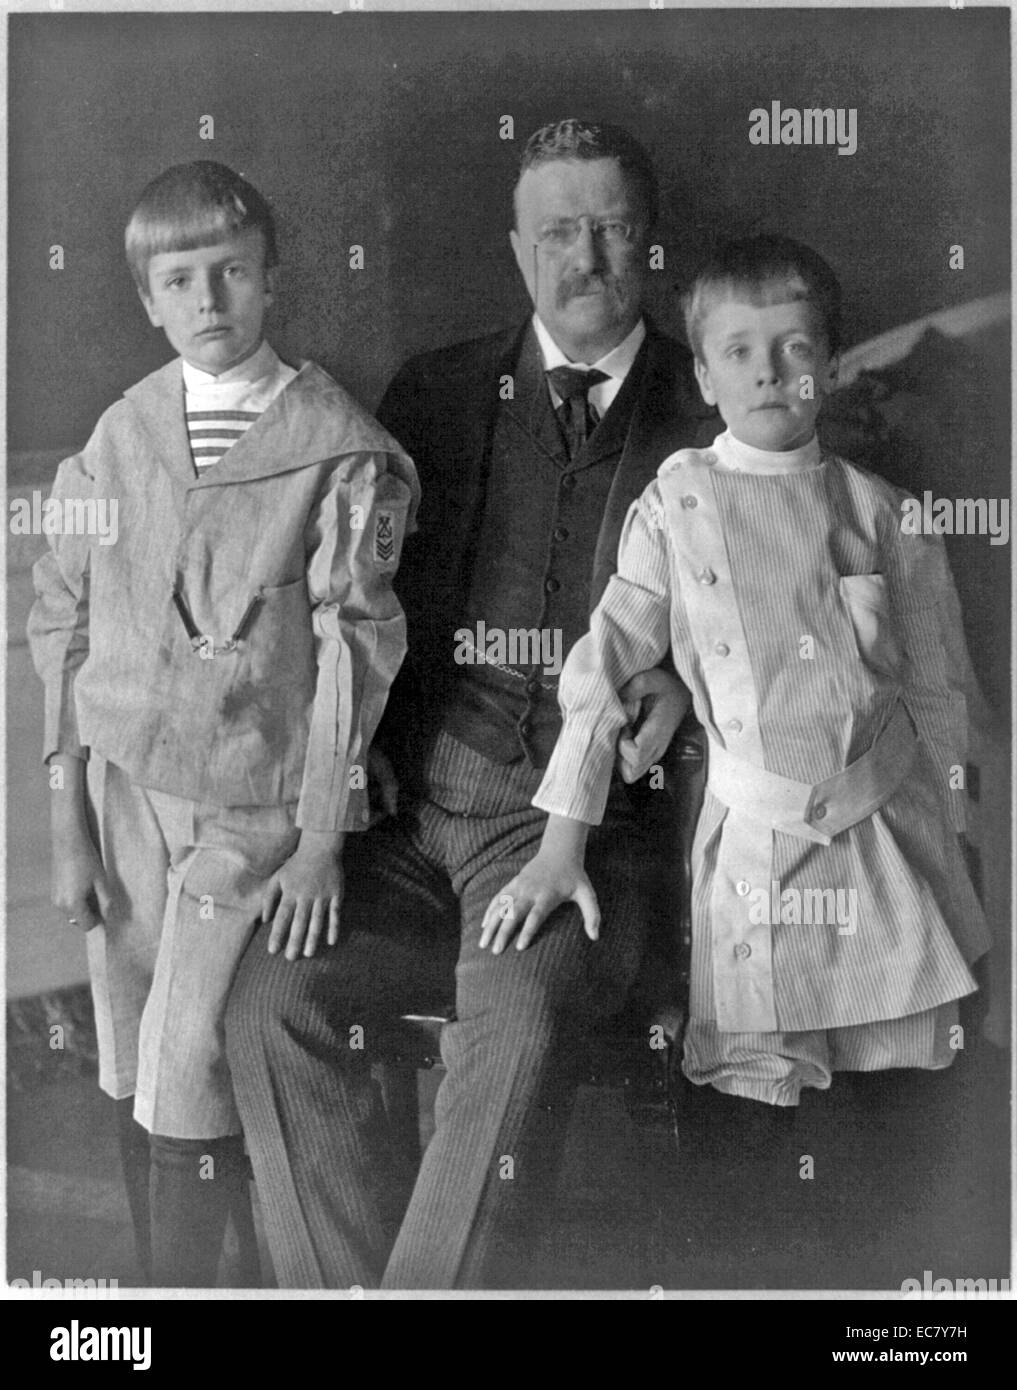 President Roosevelt with Archie Roosevelt and Quentin Roosevelt - Stock Image